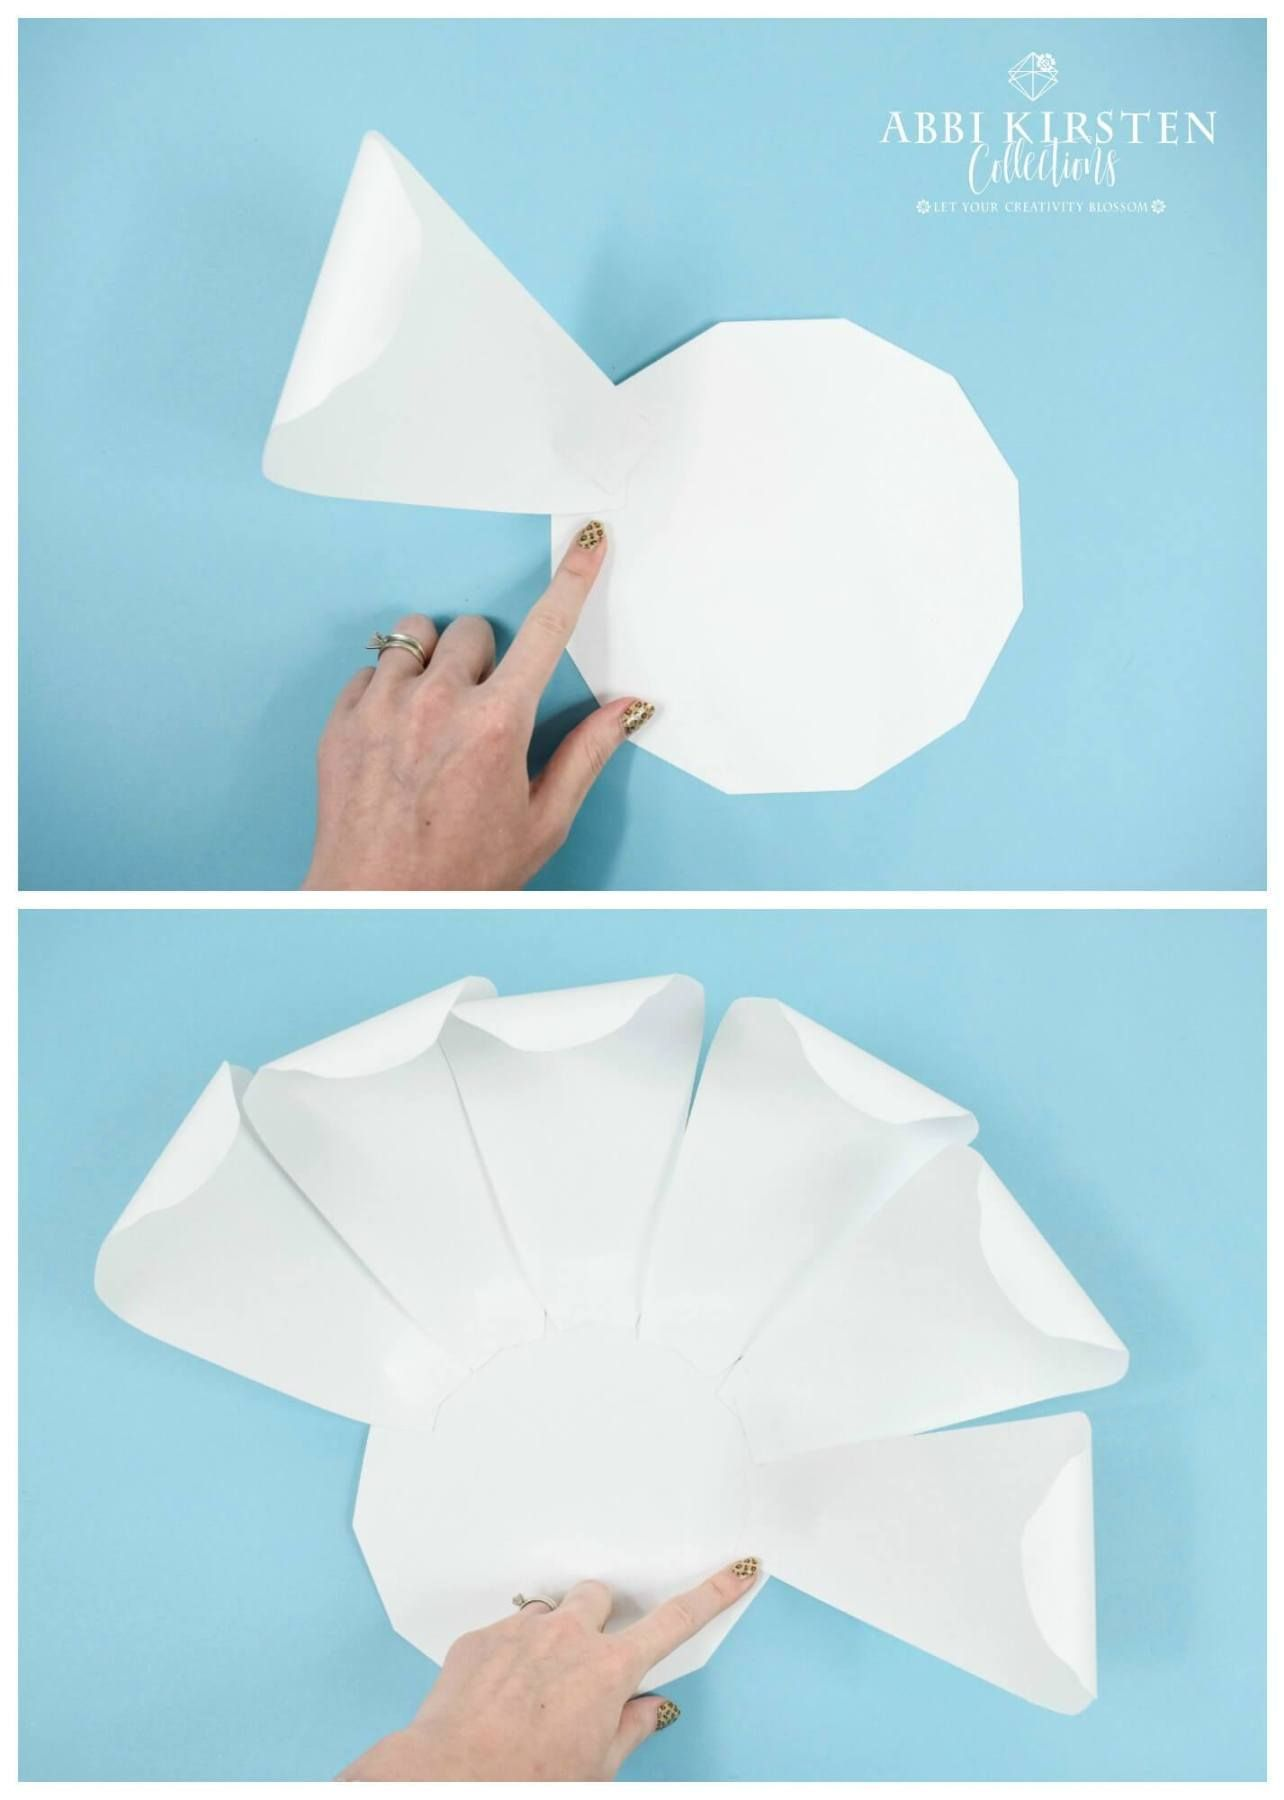 Peony Paper Flower Tutorial. DIY Giant Snow Peony Paper Flowers #constructionpaperflowers Peony Paper Flower Tutorial. DIY Giant Snow Peony Paper Flowers #constructionpaperflowers Peony Paper Flower Tutorial. DIY Giant Snow Peony Paper Flowers #constructionpaperflowers Peony Paper Flower Tutorial. DIY Giant Snow Peony Paper Flowers #constructionpaperflowers Peony Paper Flower Tutorial. DIY Giant Snow Peony Paper Flowers #constructionpaperflowers Peony Paper Flower Tutorial. DIY Giant Snow Peony #giantpaperflowers